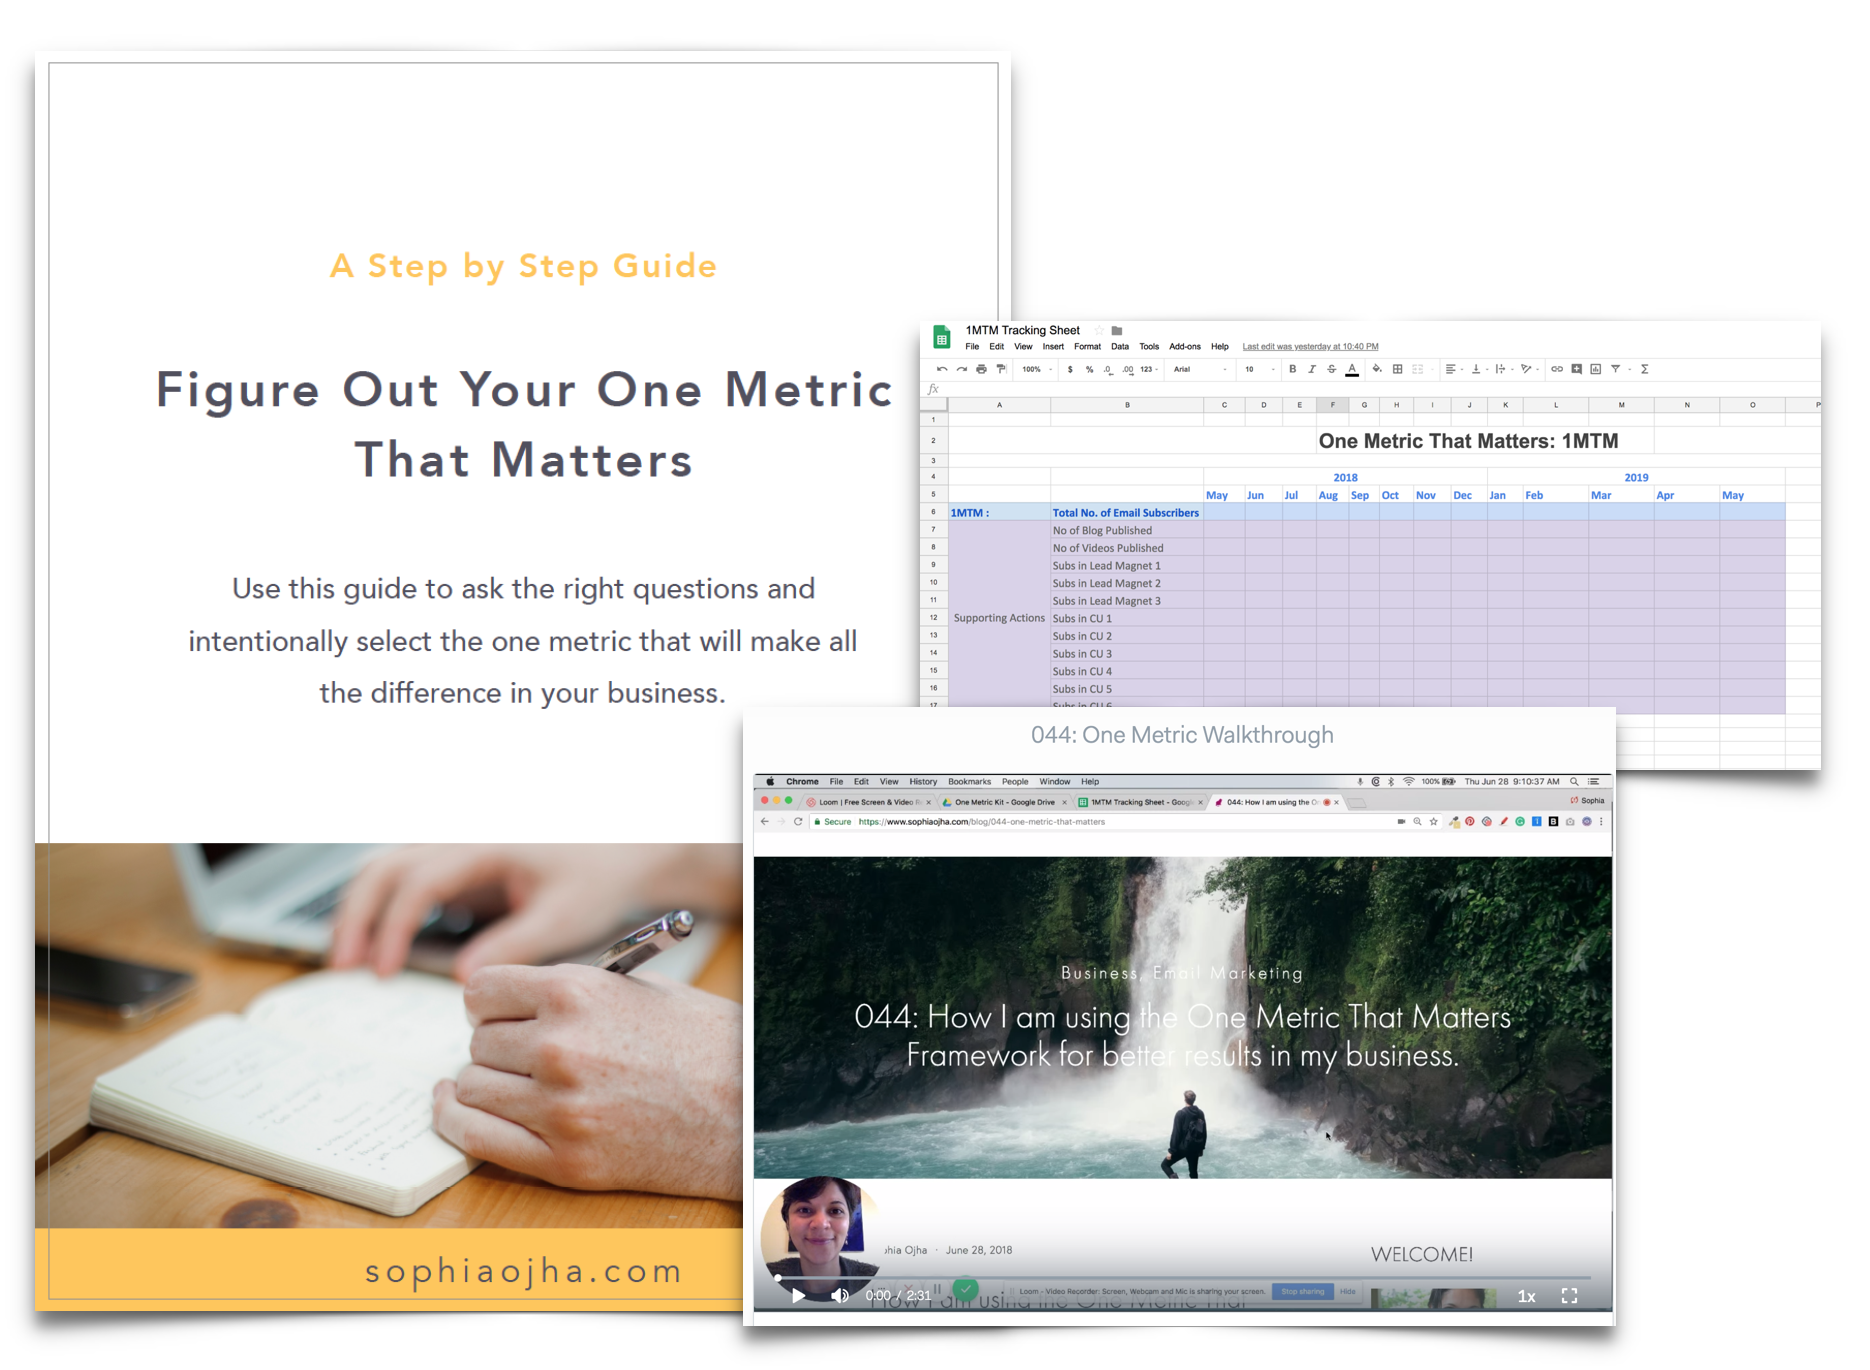 One Metric That Matters Guide, Video and Spreadsheet